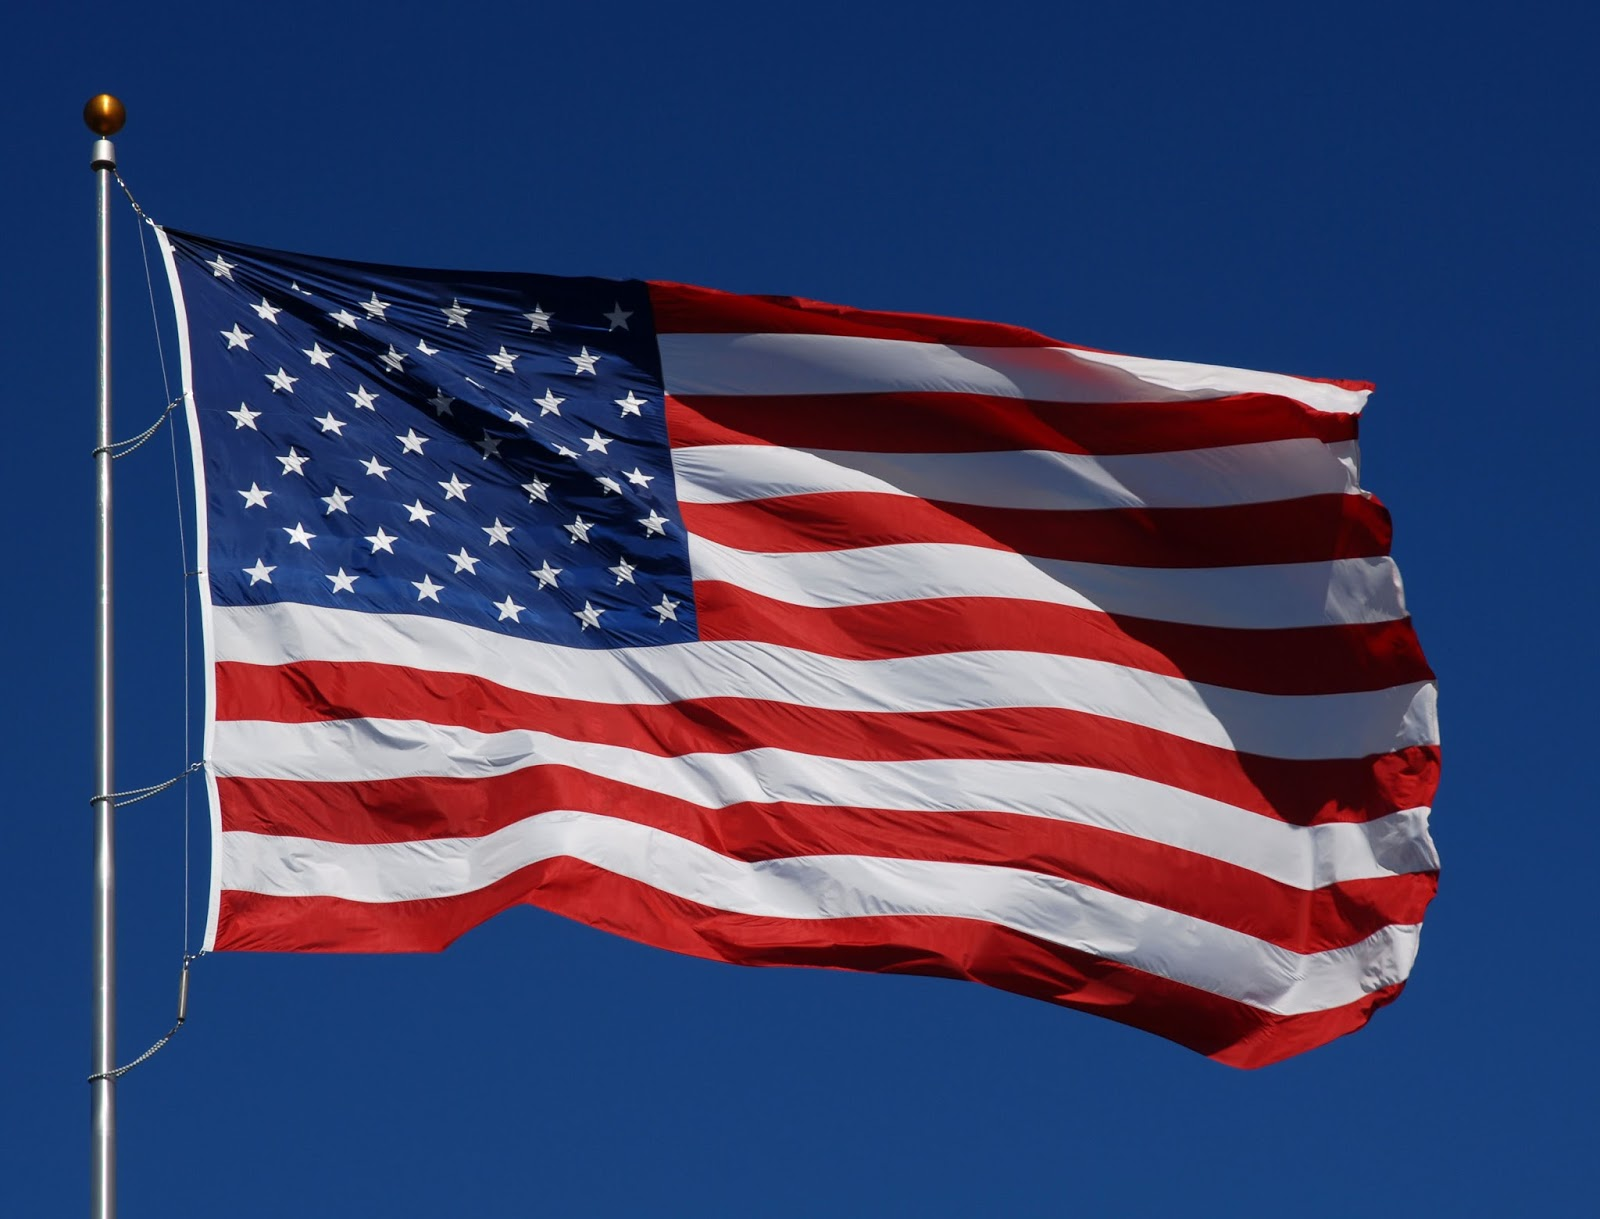 Old American Flag With Black Background HD wallpaper 1600x1219